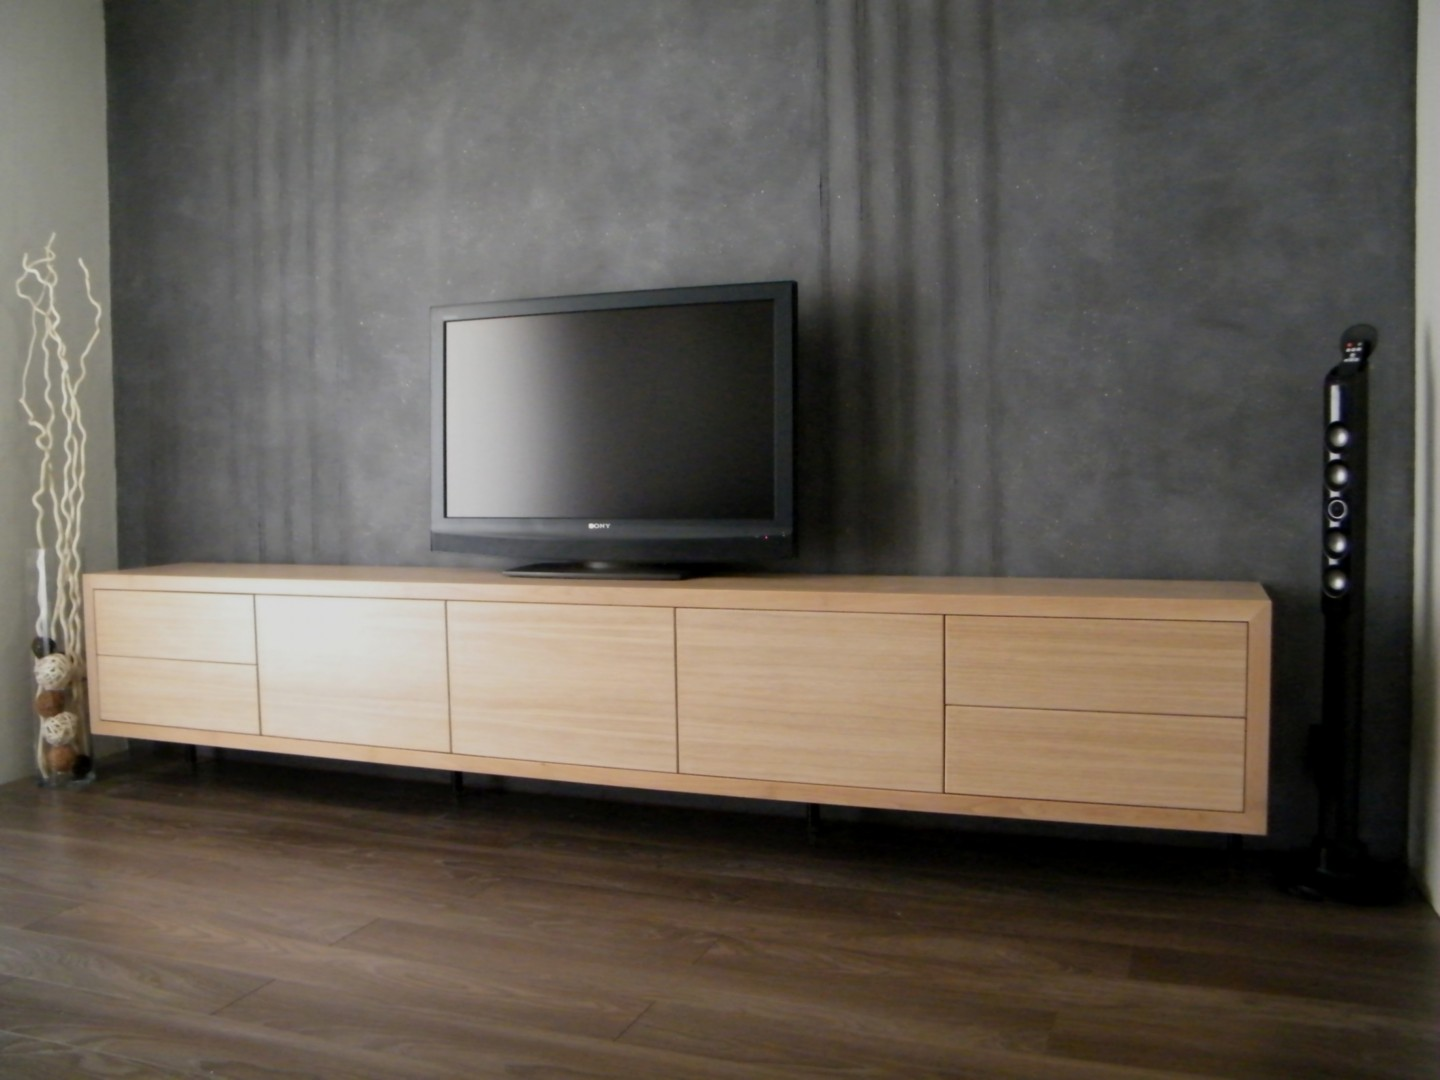 meubles bas chambre meuble bas pour tv meuble tv design. Black Bedroom Furniture Sets. Home Design Ideas